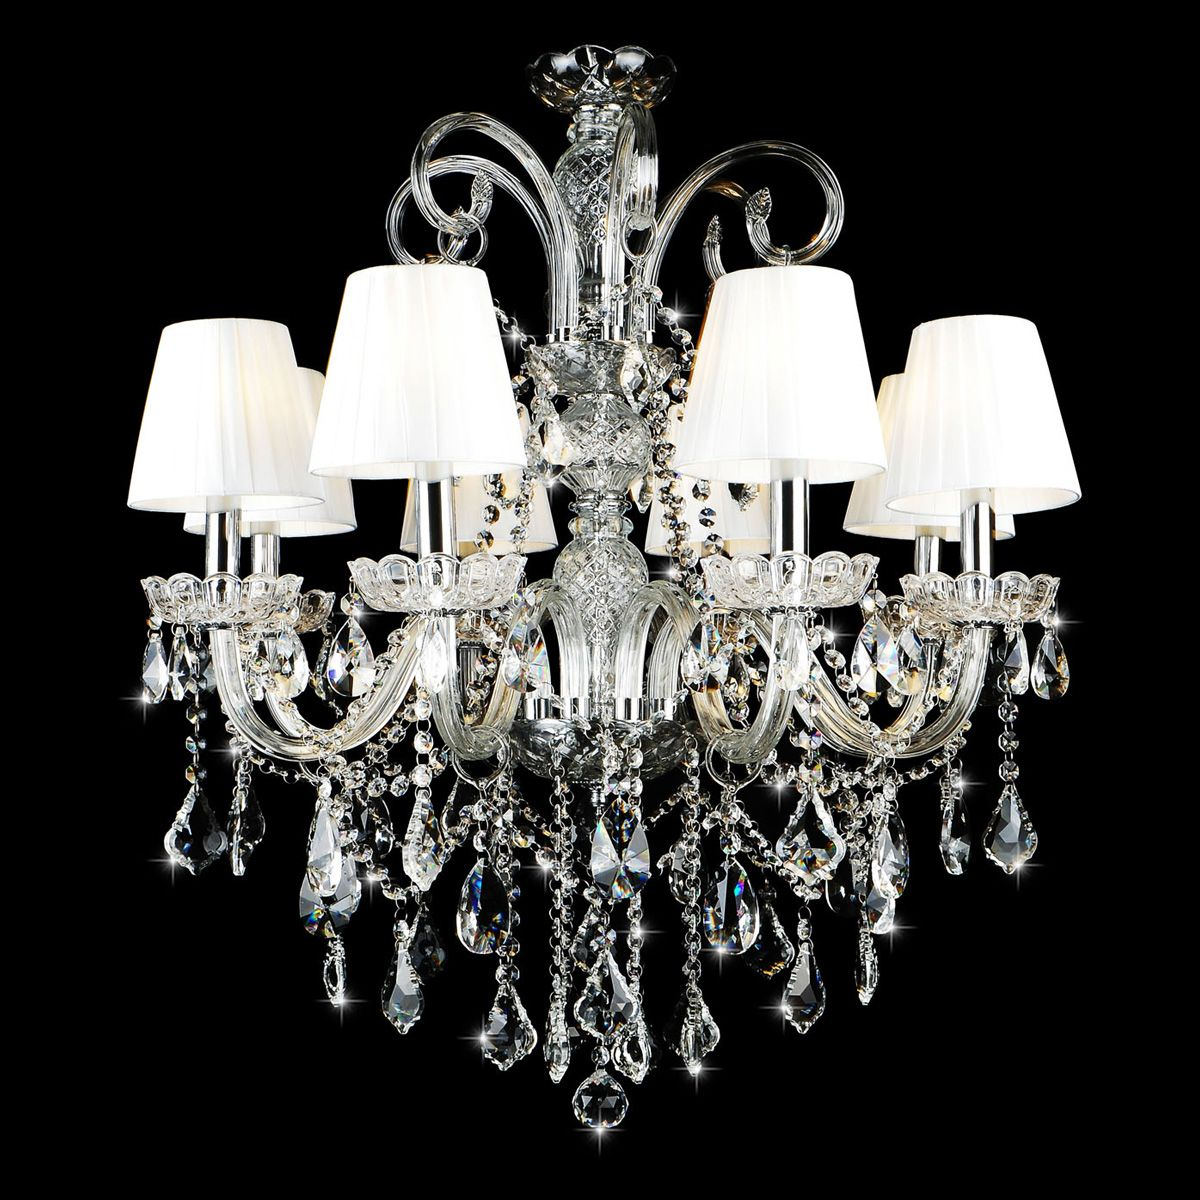 Free shipping european style candle crystal chandelier lamp house free shipping european style candle crystal chandelier lamp house the living room dining bedroom chandelier new aloadofball Image collections